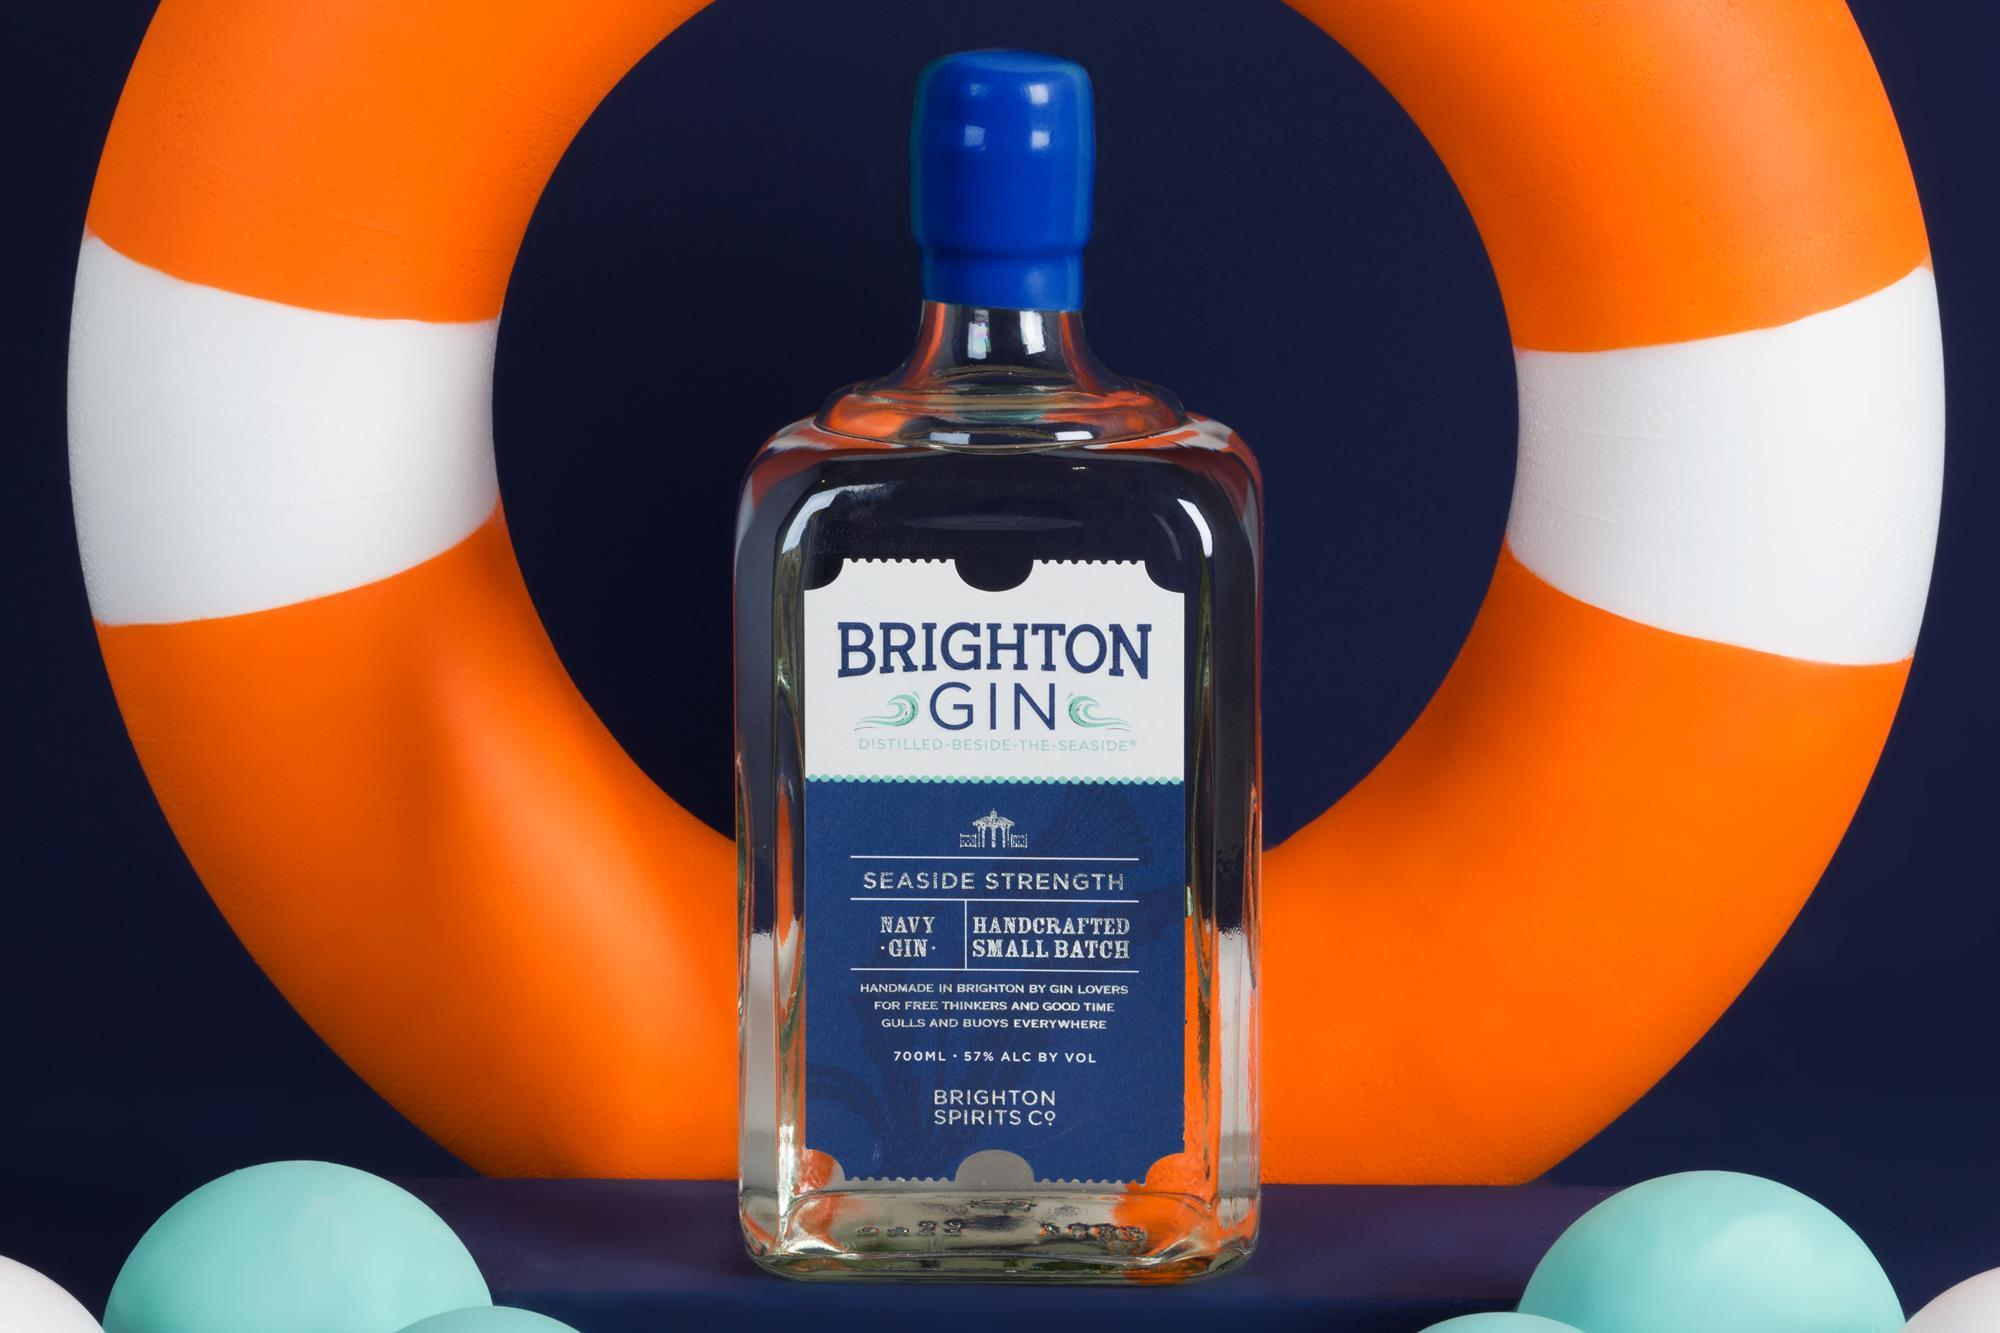 Brighton Gin Seaside Strength Navy Gin